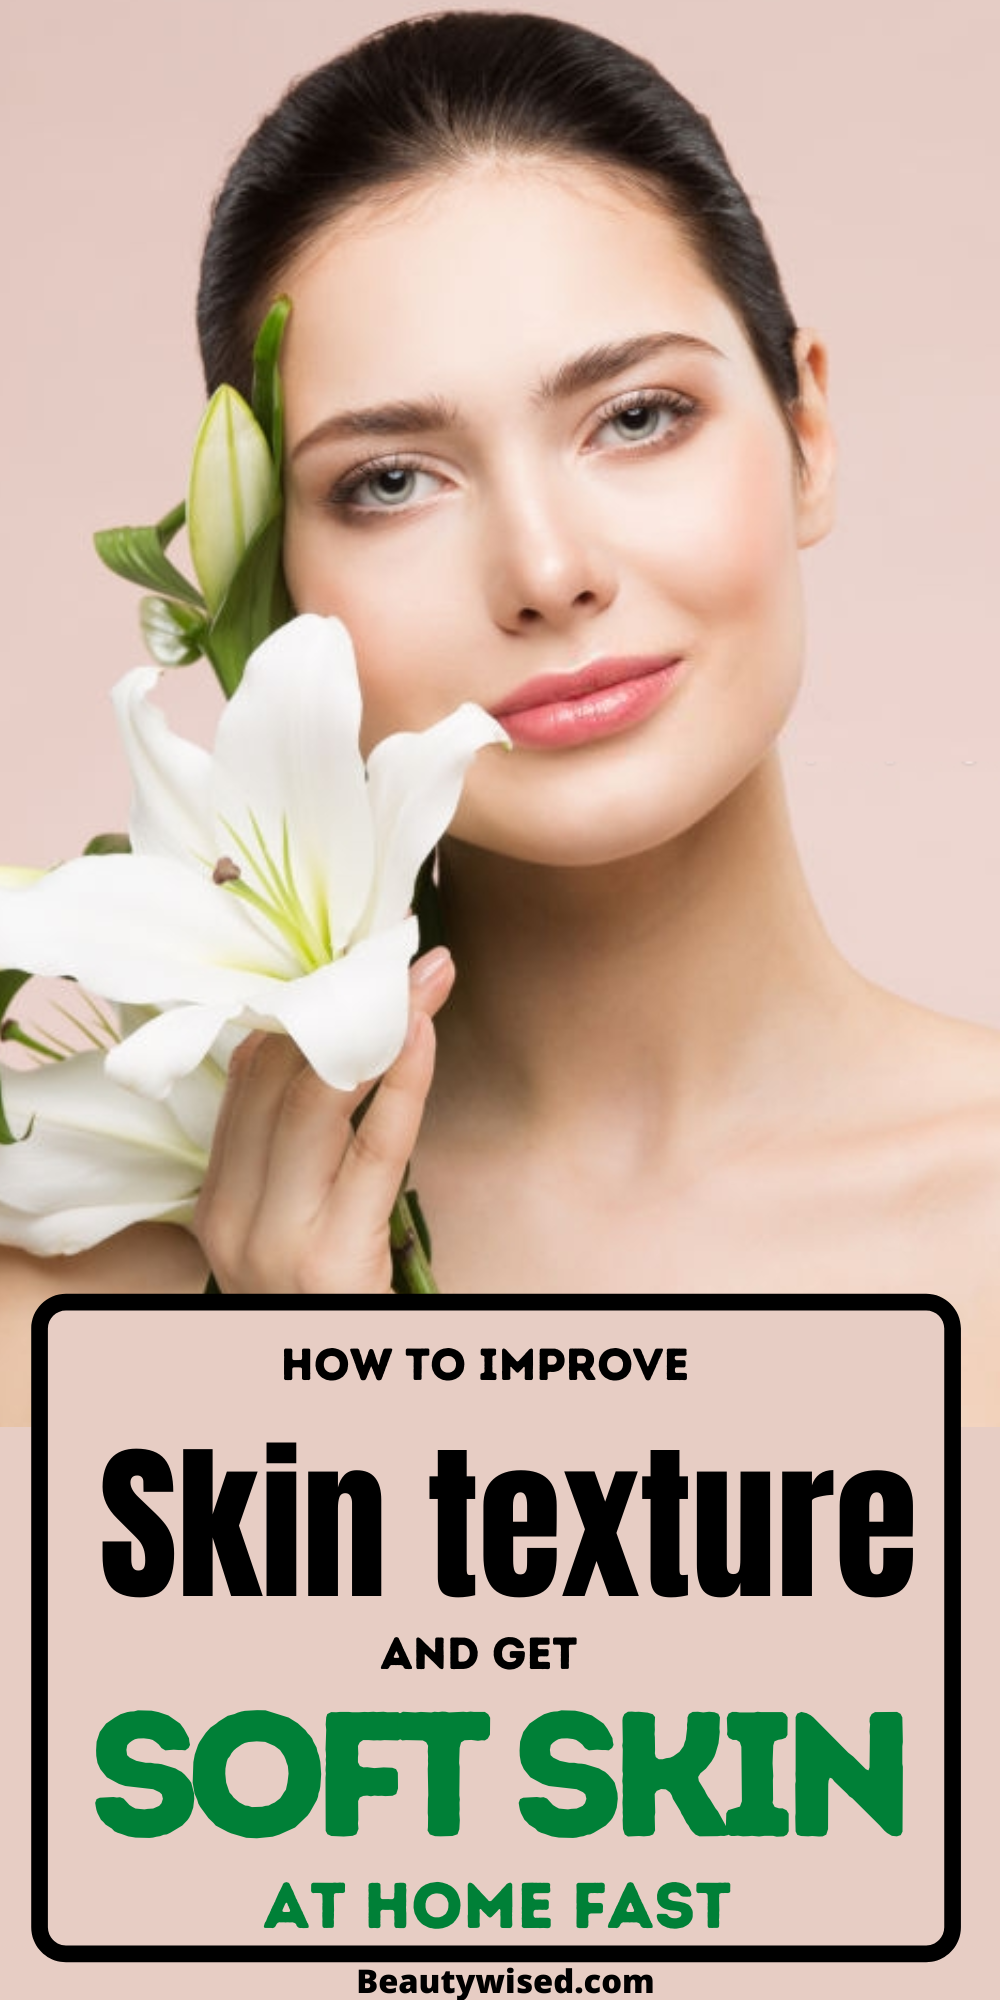 17 tried & tested skincare tips & DIY remedies to get back